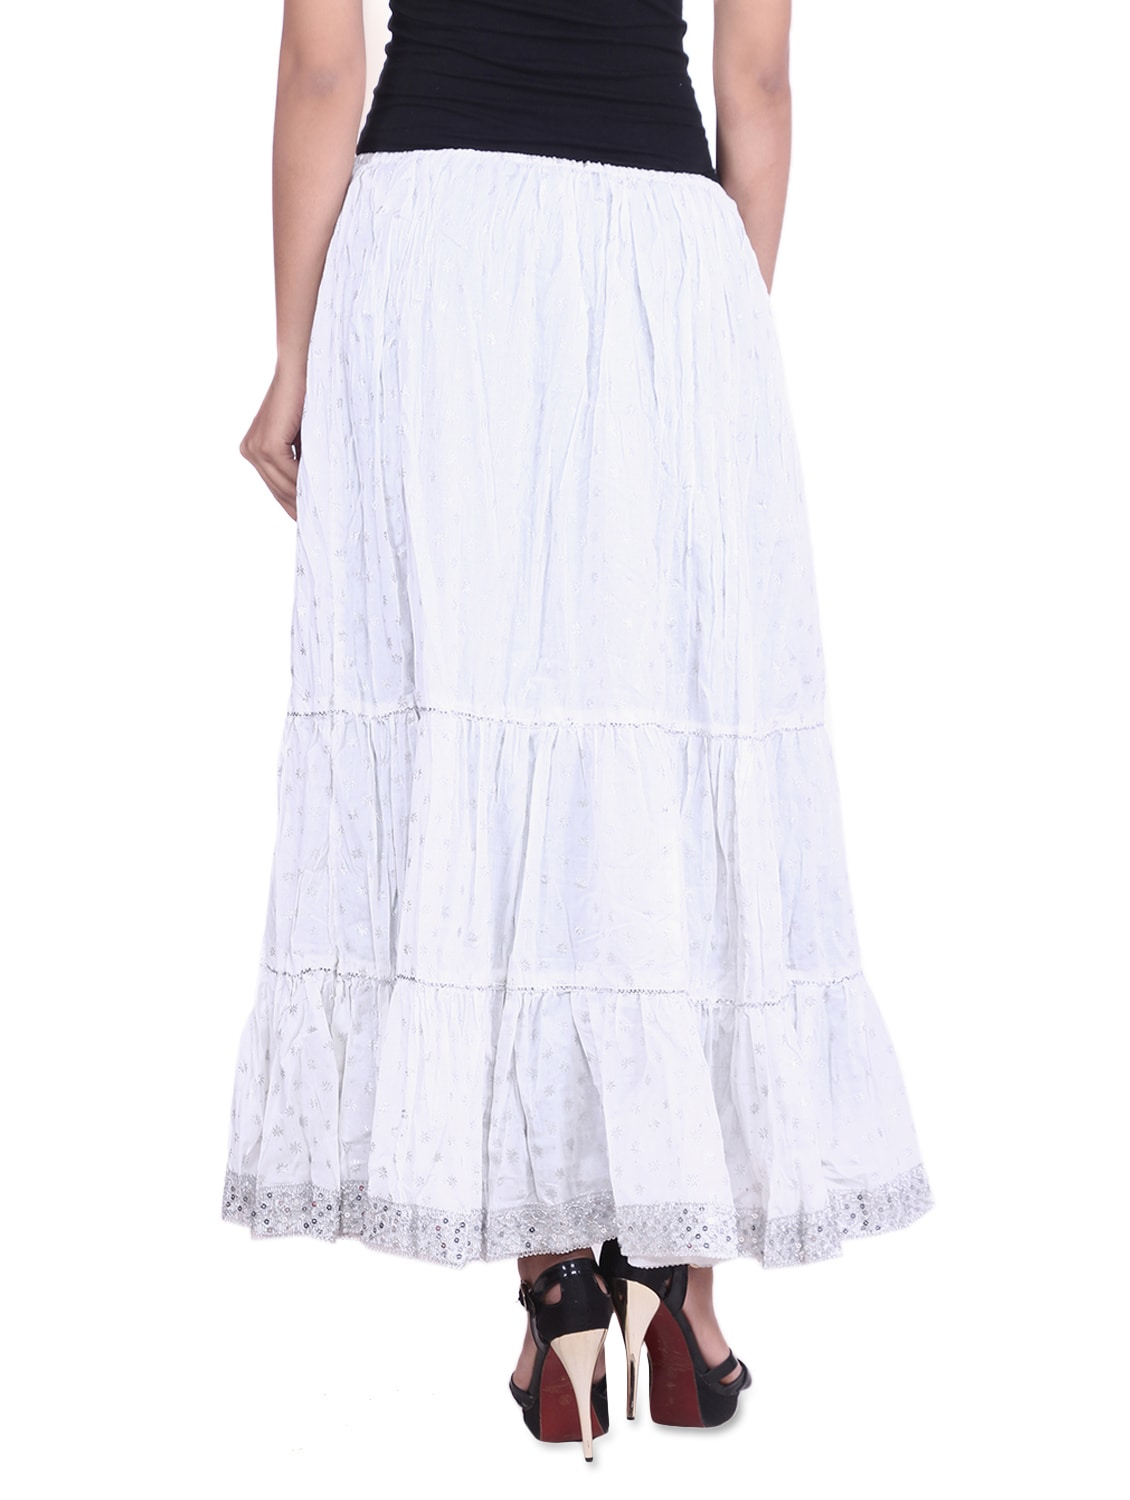 e6f54a0f5d ... white cotton printed n sequined gathered skirt - 9617187 - Zoom Image -  3